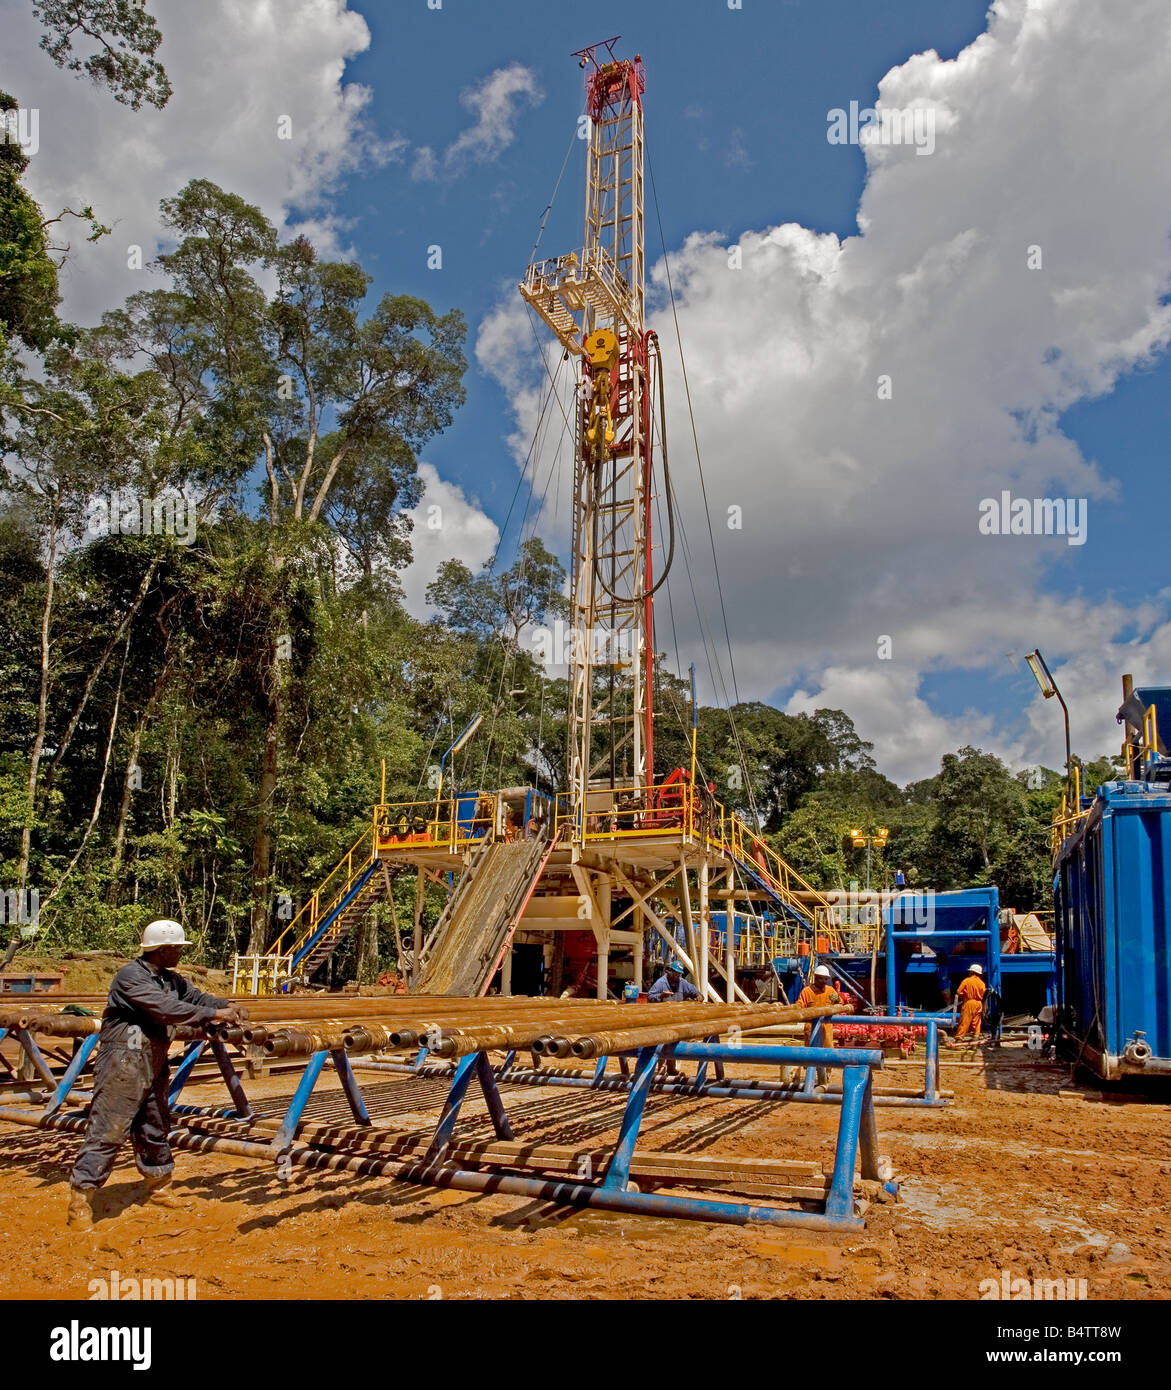 Remote onshore oil well and drillrig site in rainforest with crewmen